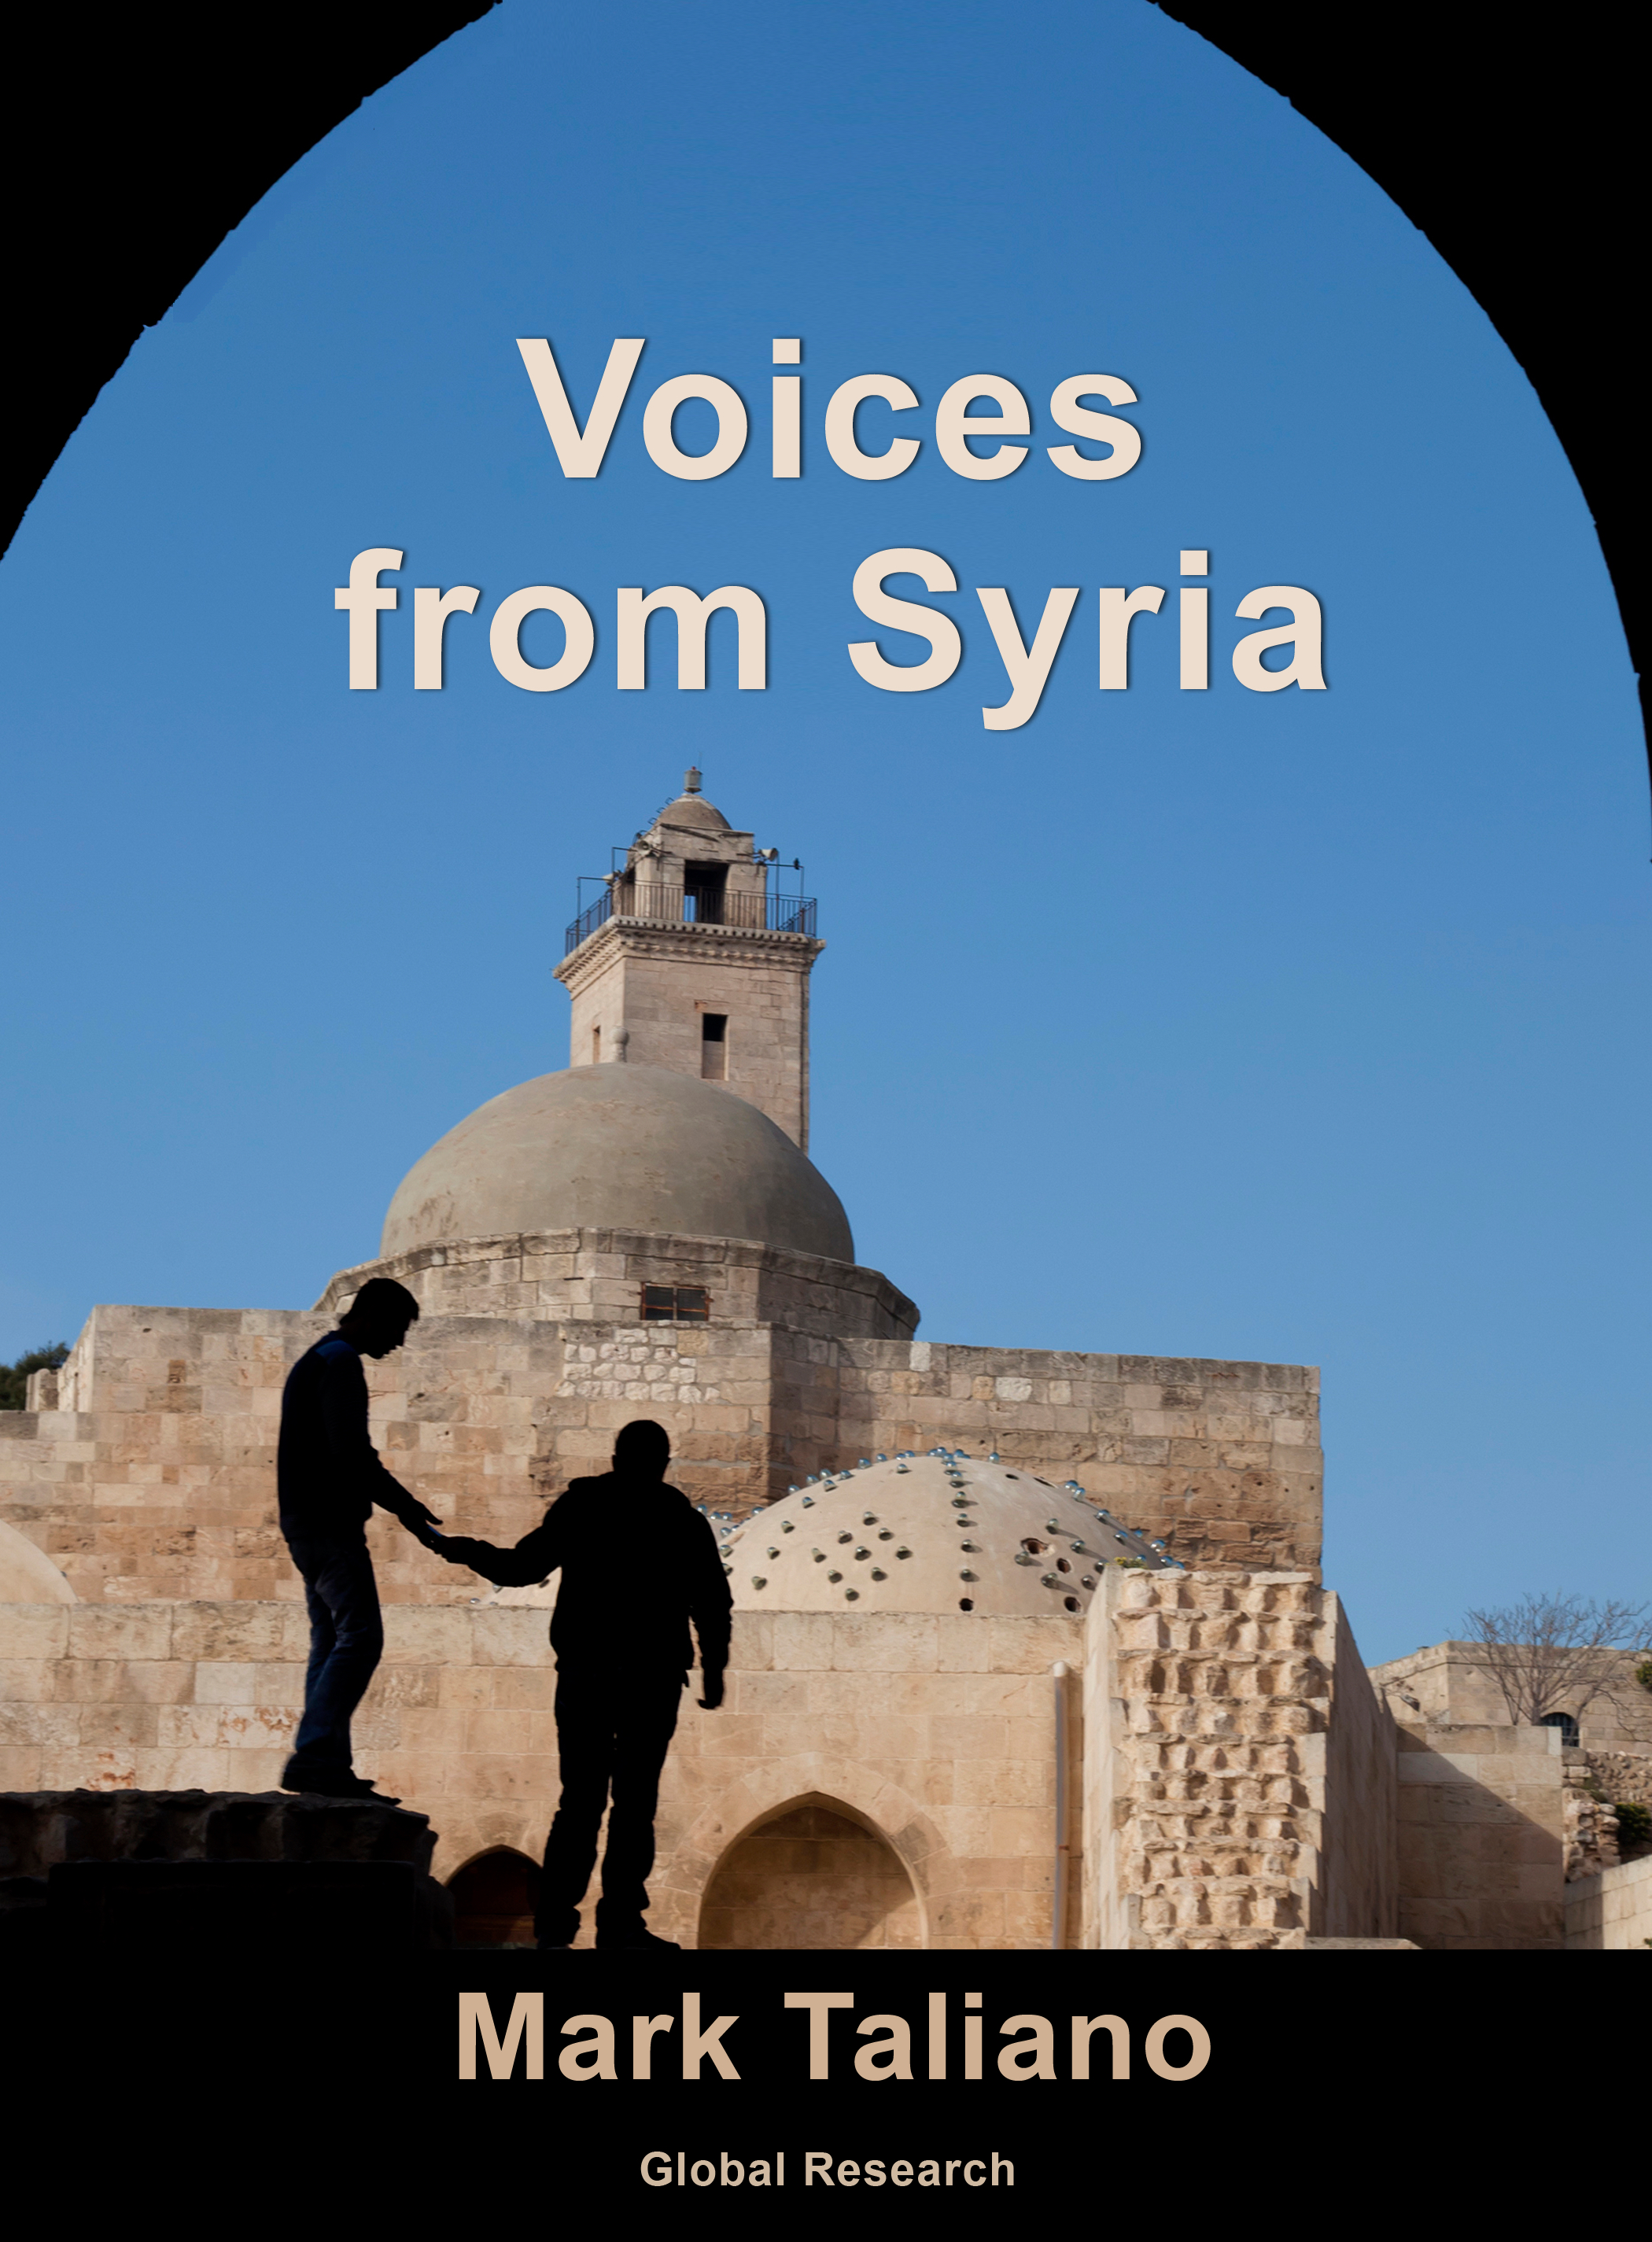 Voices From Syria: A Testimony to The Bravery and Resilience of The Syrian People